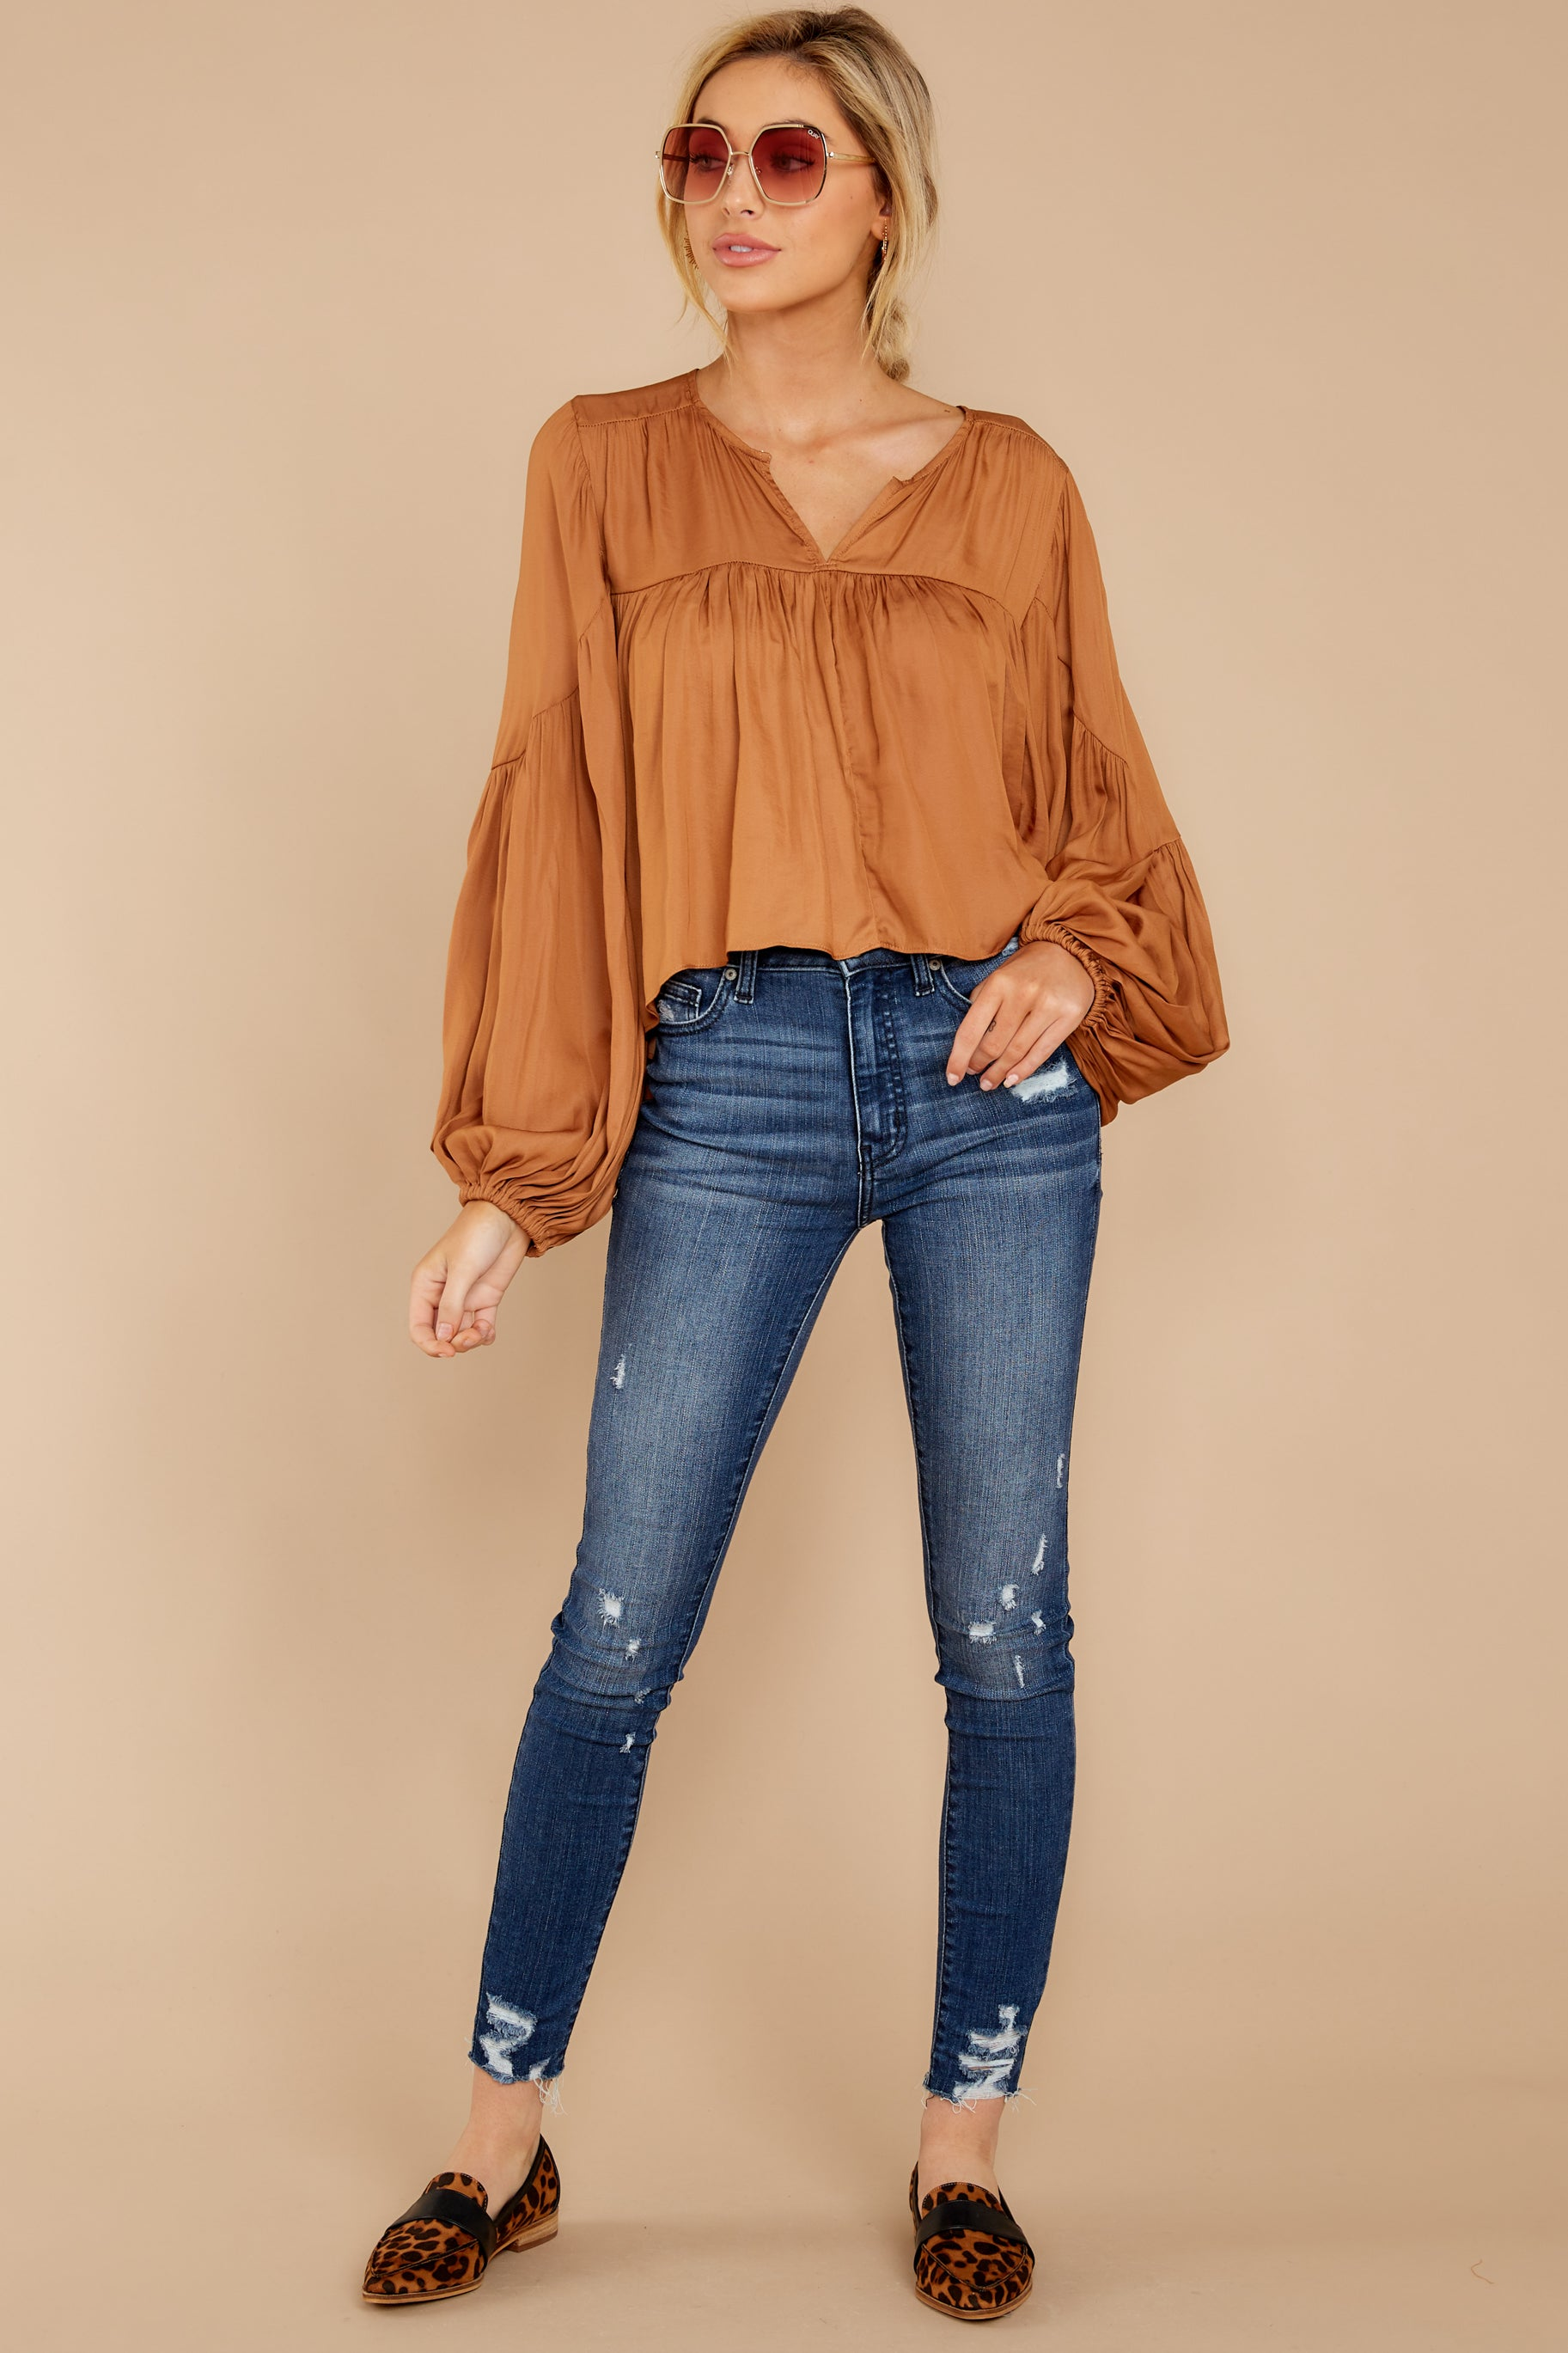 2 A Different Day Caramel Top at reddress.com